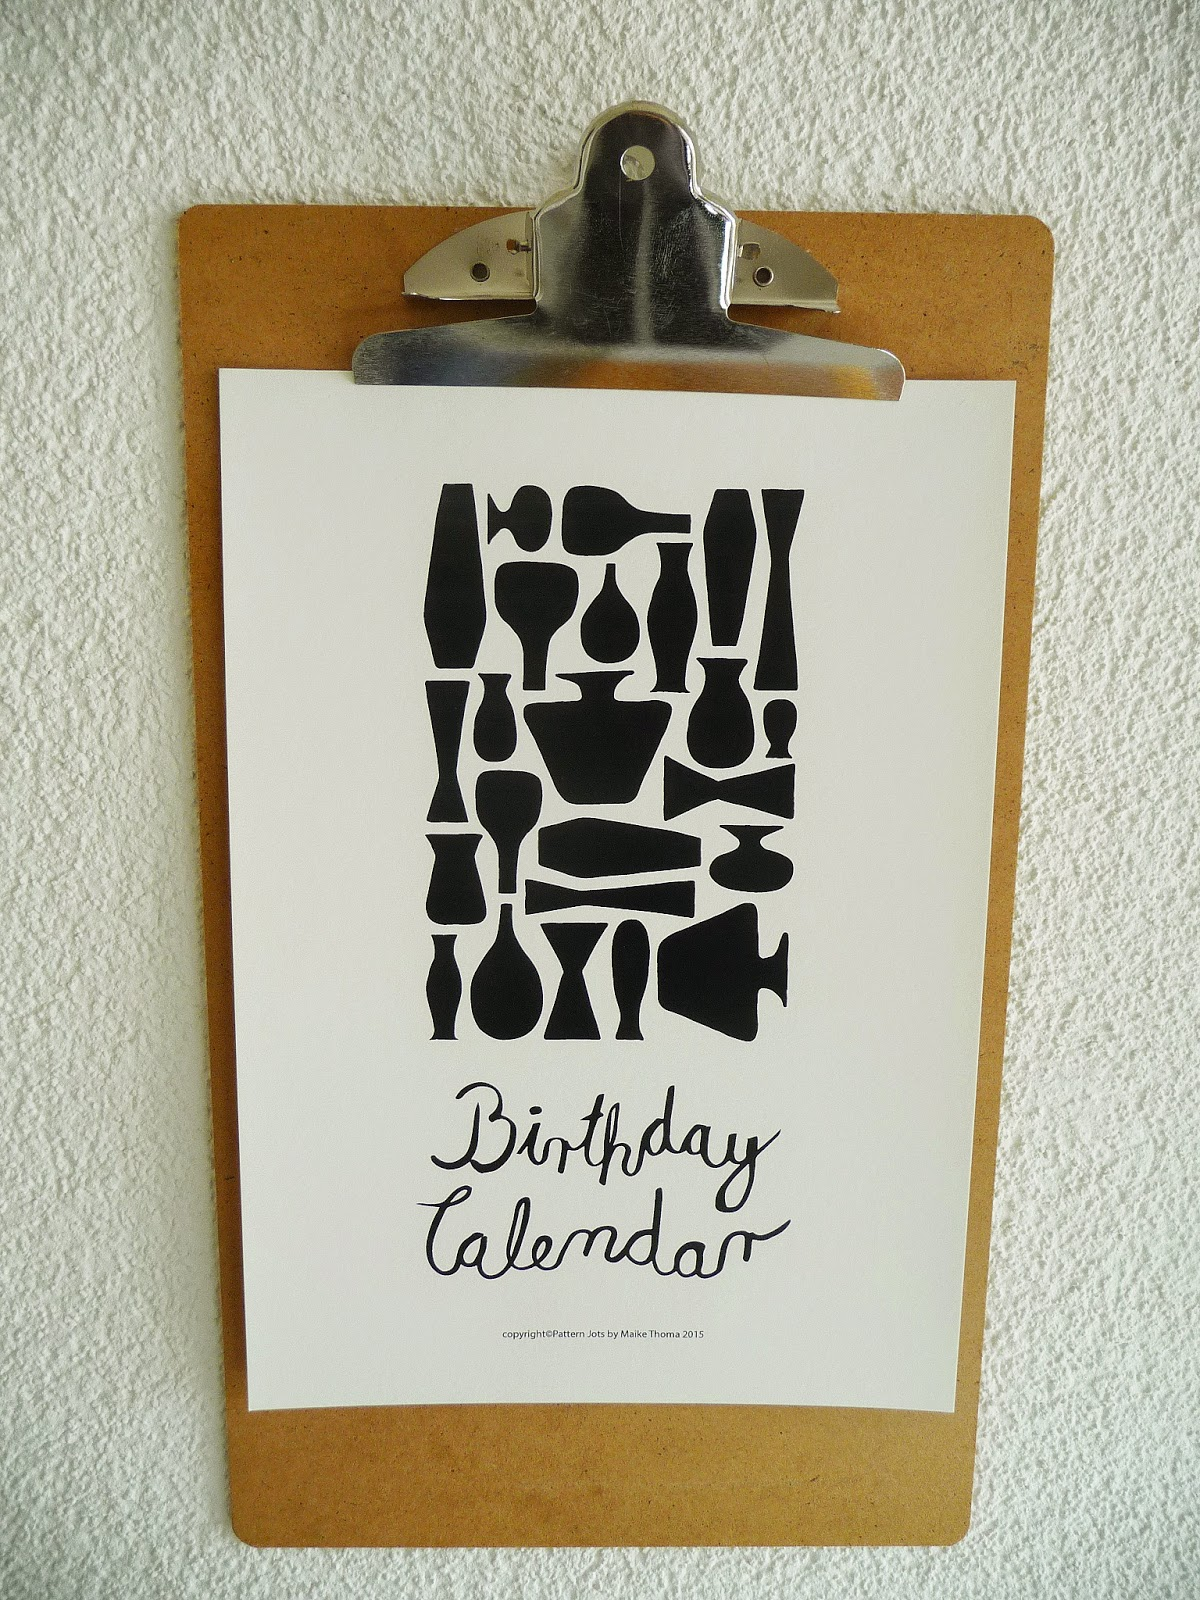 https://www.etsy.com/listing/227864074/perpetual-birthday-calendardiyprintable?ref=listing-shop-header-2